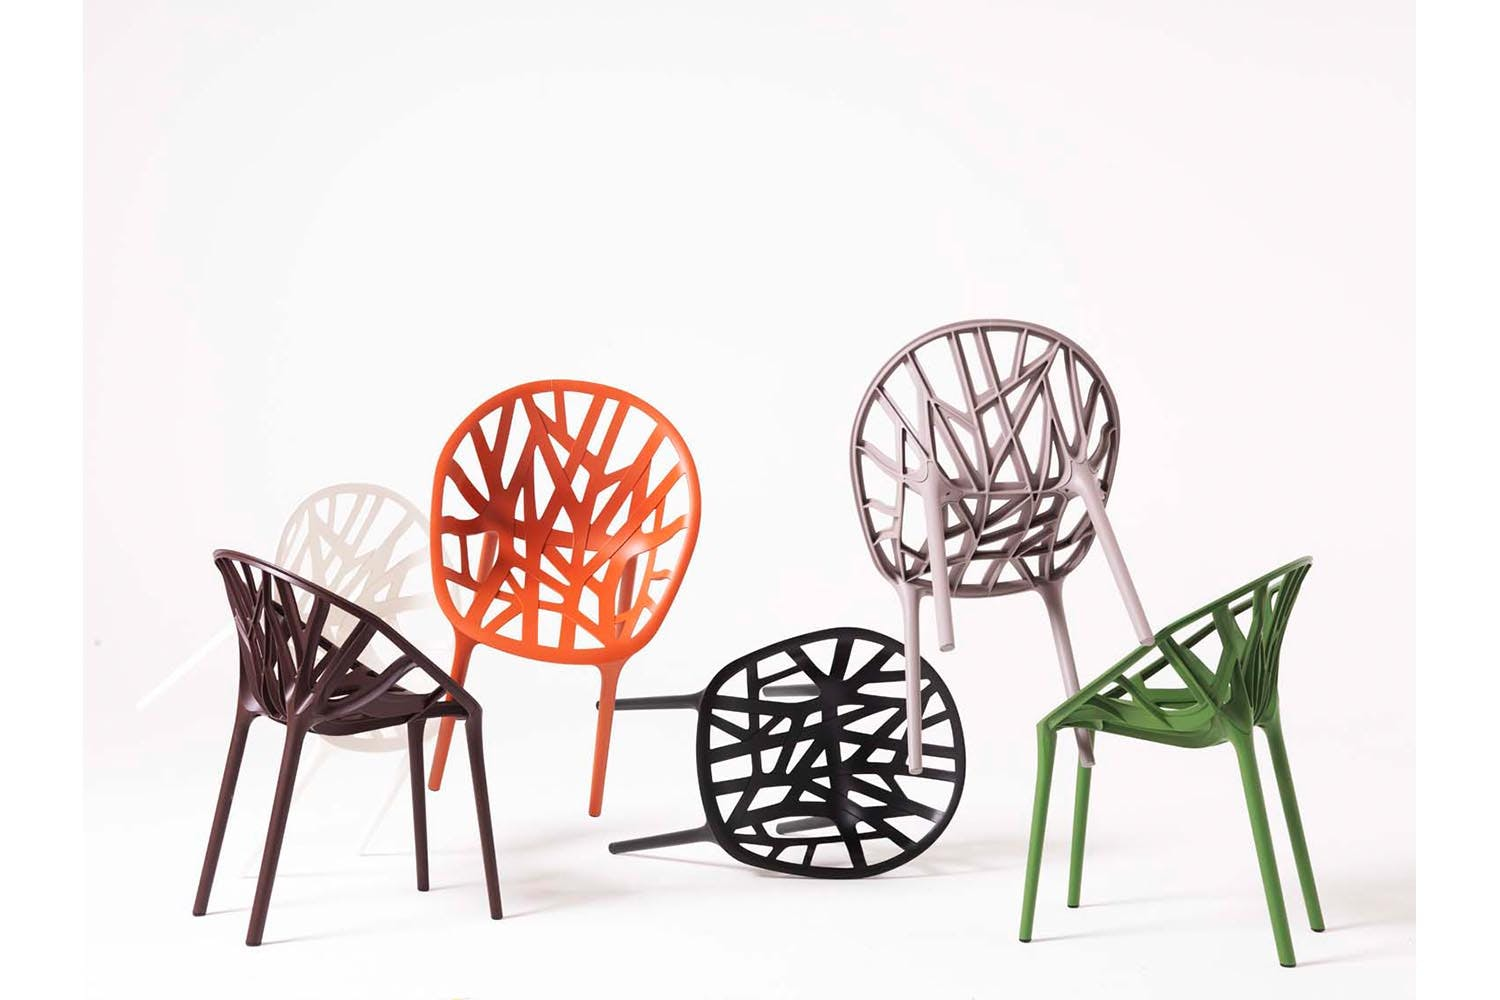 vegetal chair by ronan erwan bouroullec for vitra space furniture. Black Bedroom Furniture Sets. Home Design Ideas